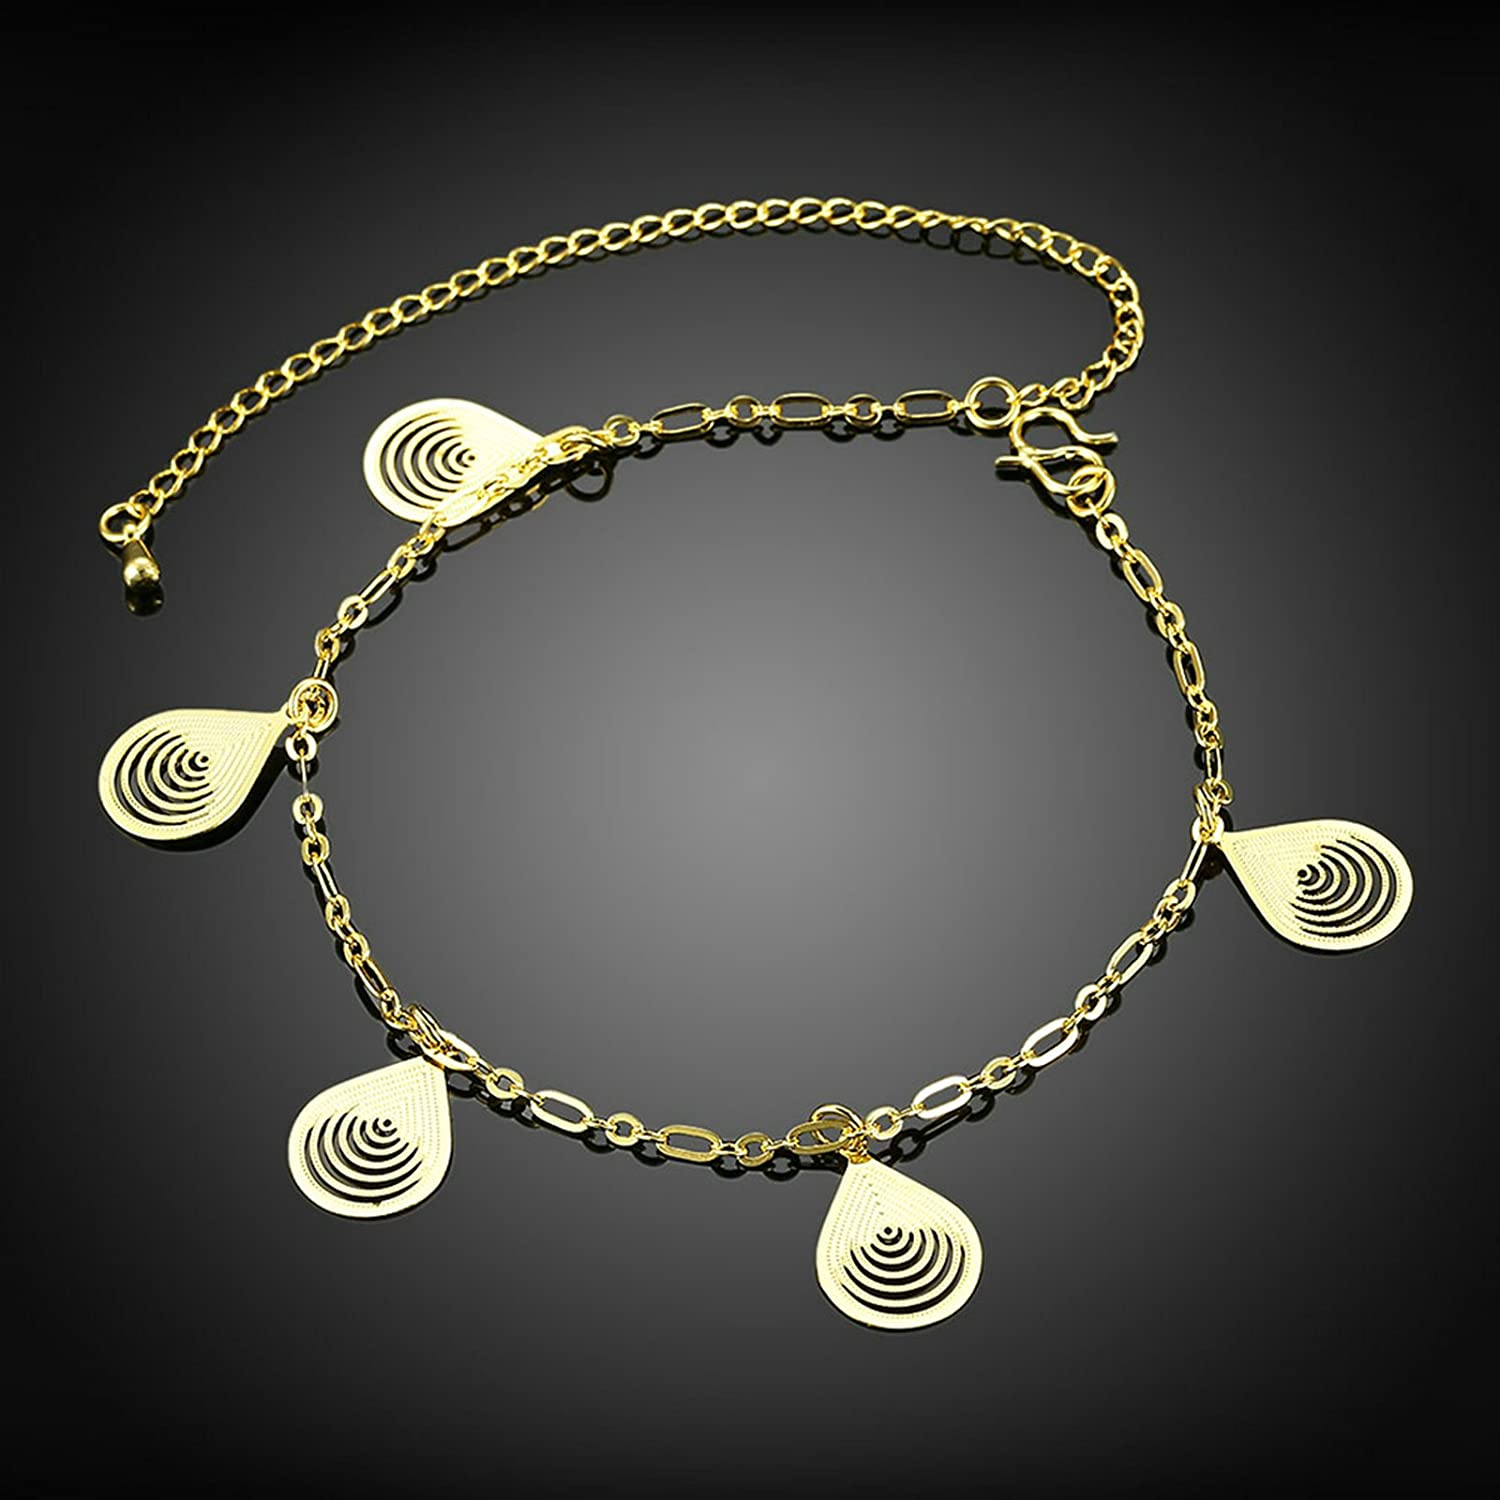 Adisaer Silver//Gold Plated Anklet Bracelet 20+10CM Chain Teardrop Pendant Womens Beach Foot Jewelry